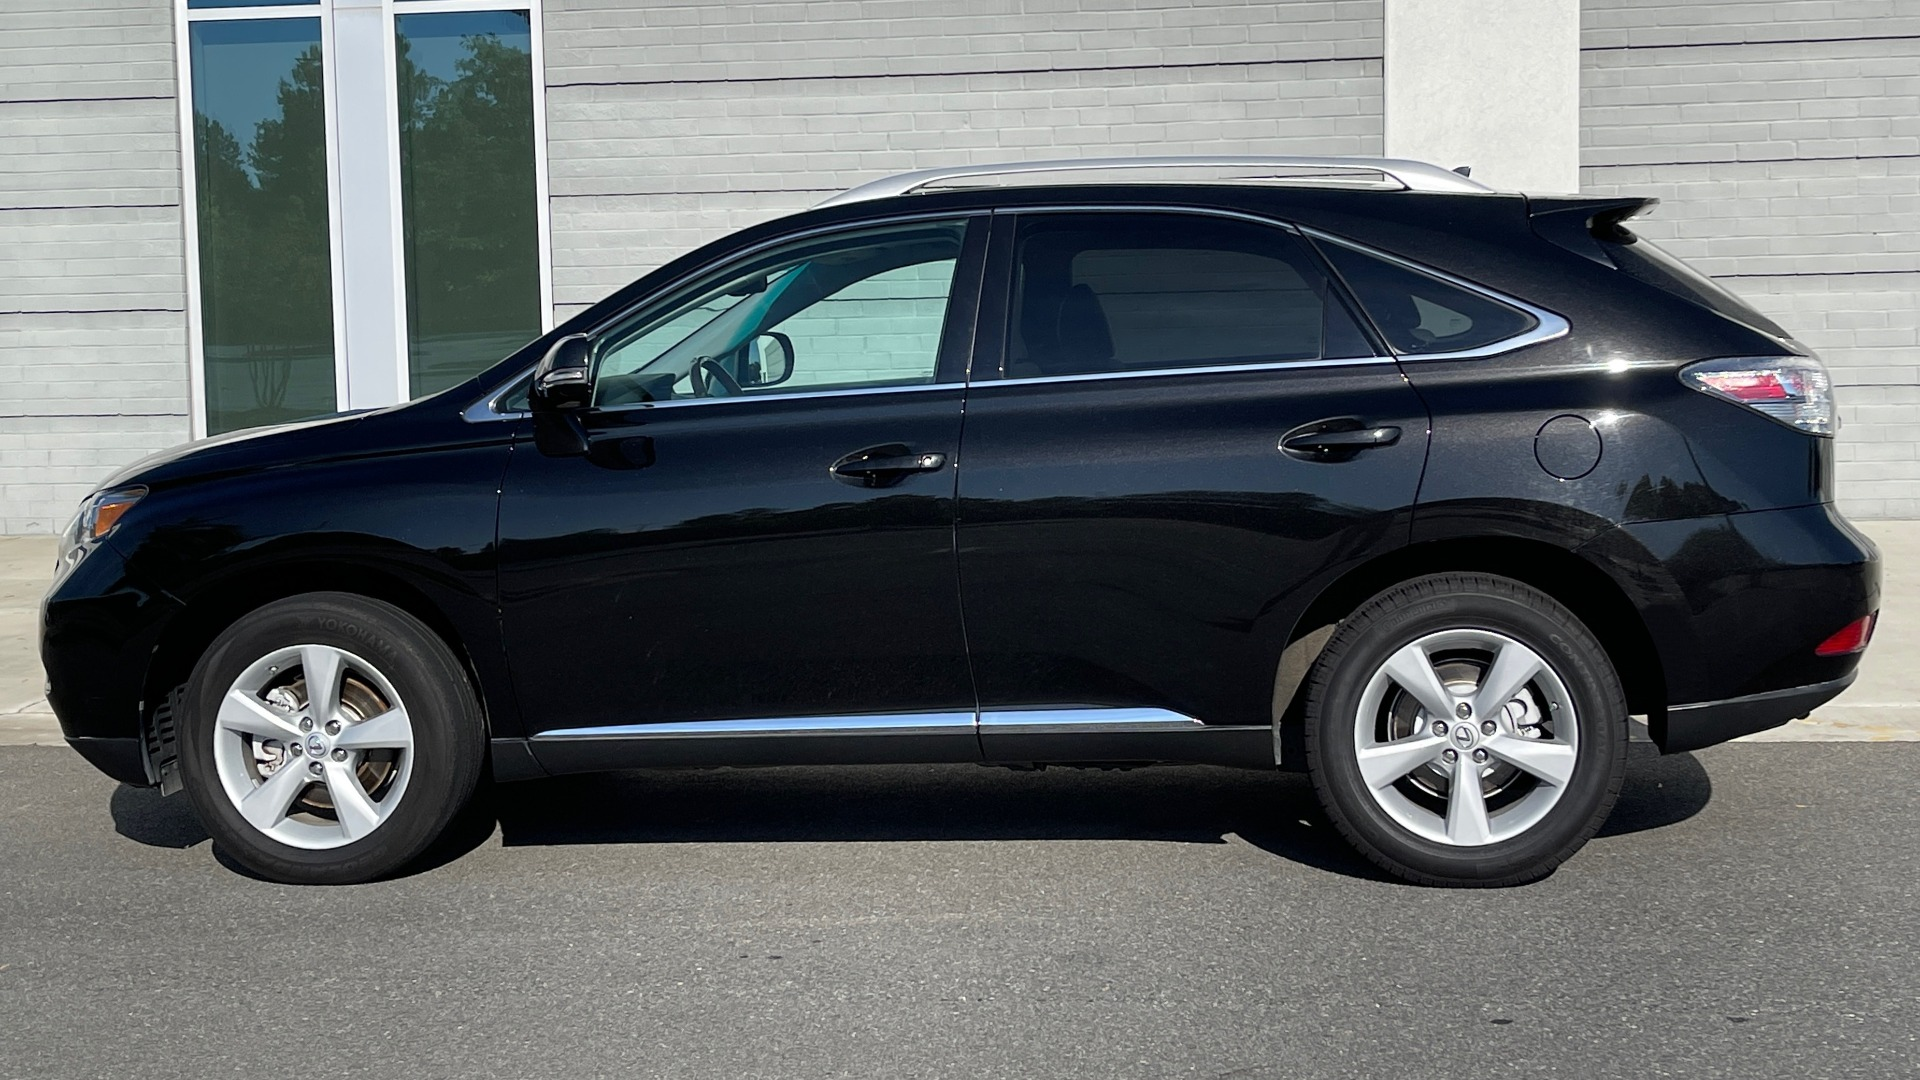 Used 2011 Lexus RX 350 PREMIUM / TOWING PREP PKG / VENTILATED STS / SUNROOF / REARVIEW for sale Sold at Formula Imports in Charlotte NC 28227 3